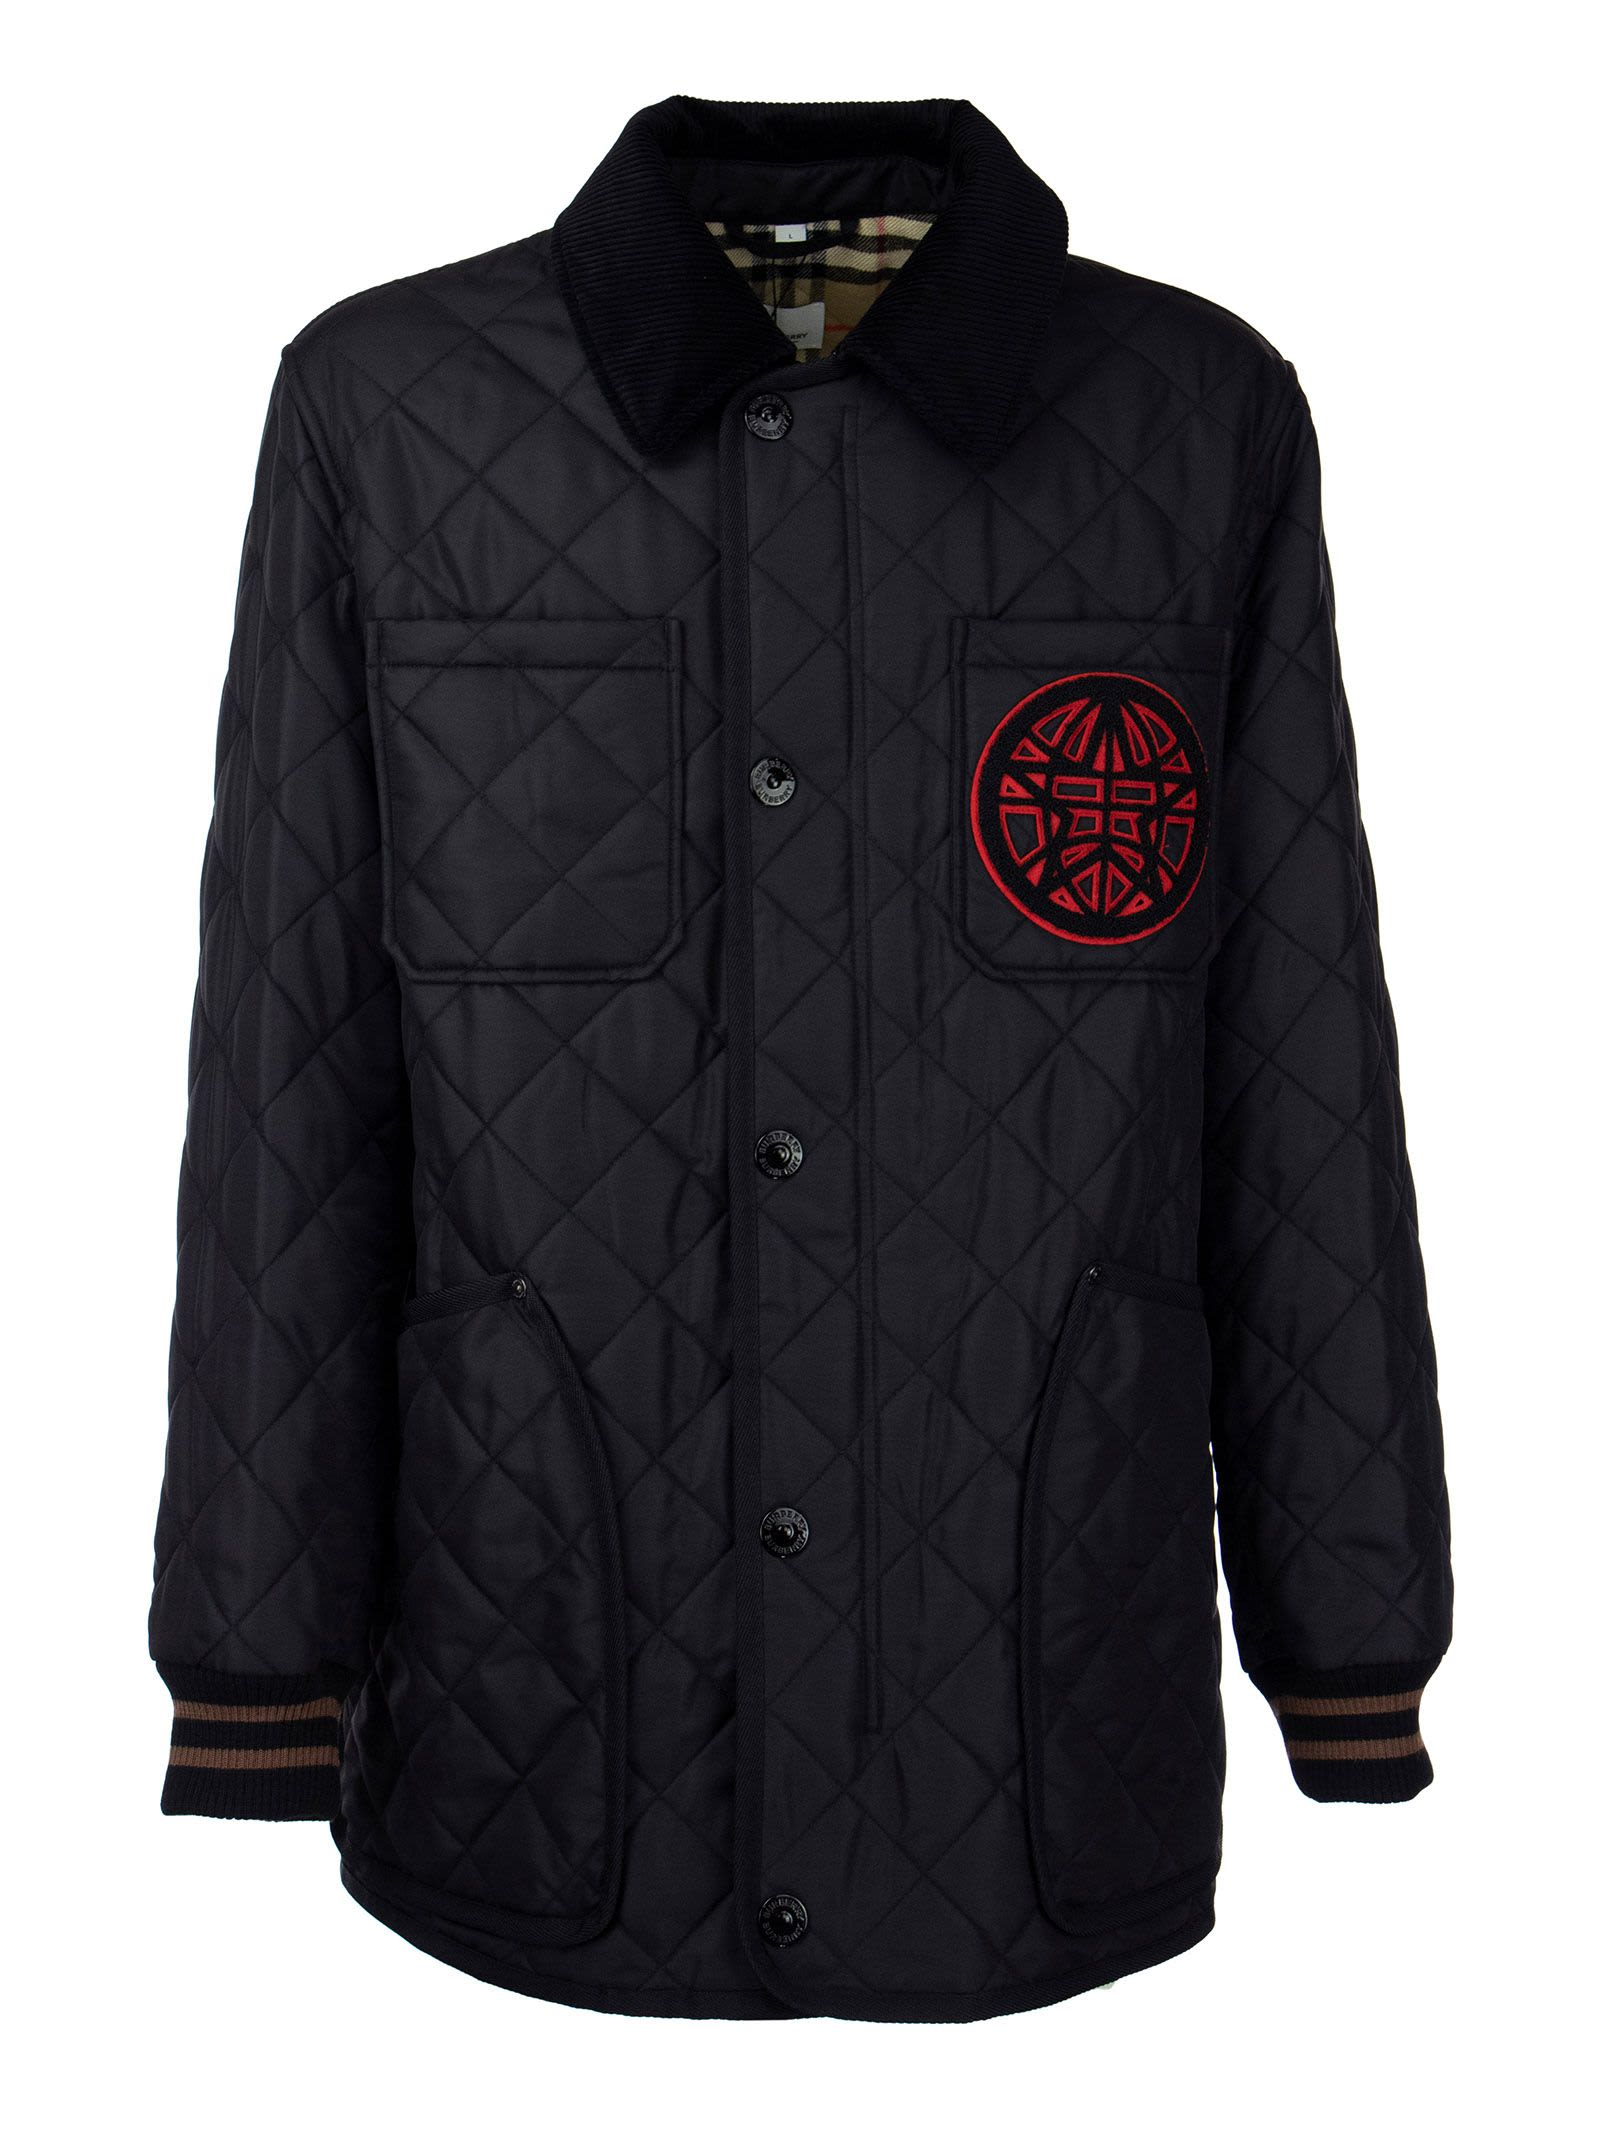 Burberry Jackets VARSITY GRAPHIC DIAMOND QUILTED BARN JACKET LANGLEY